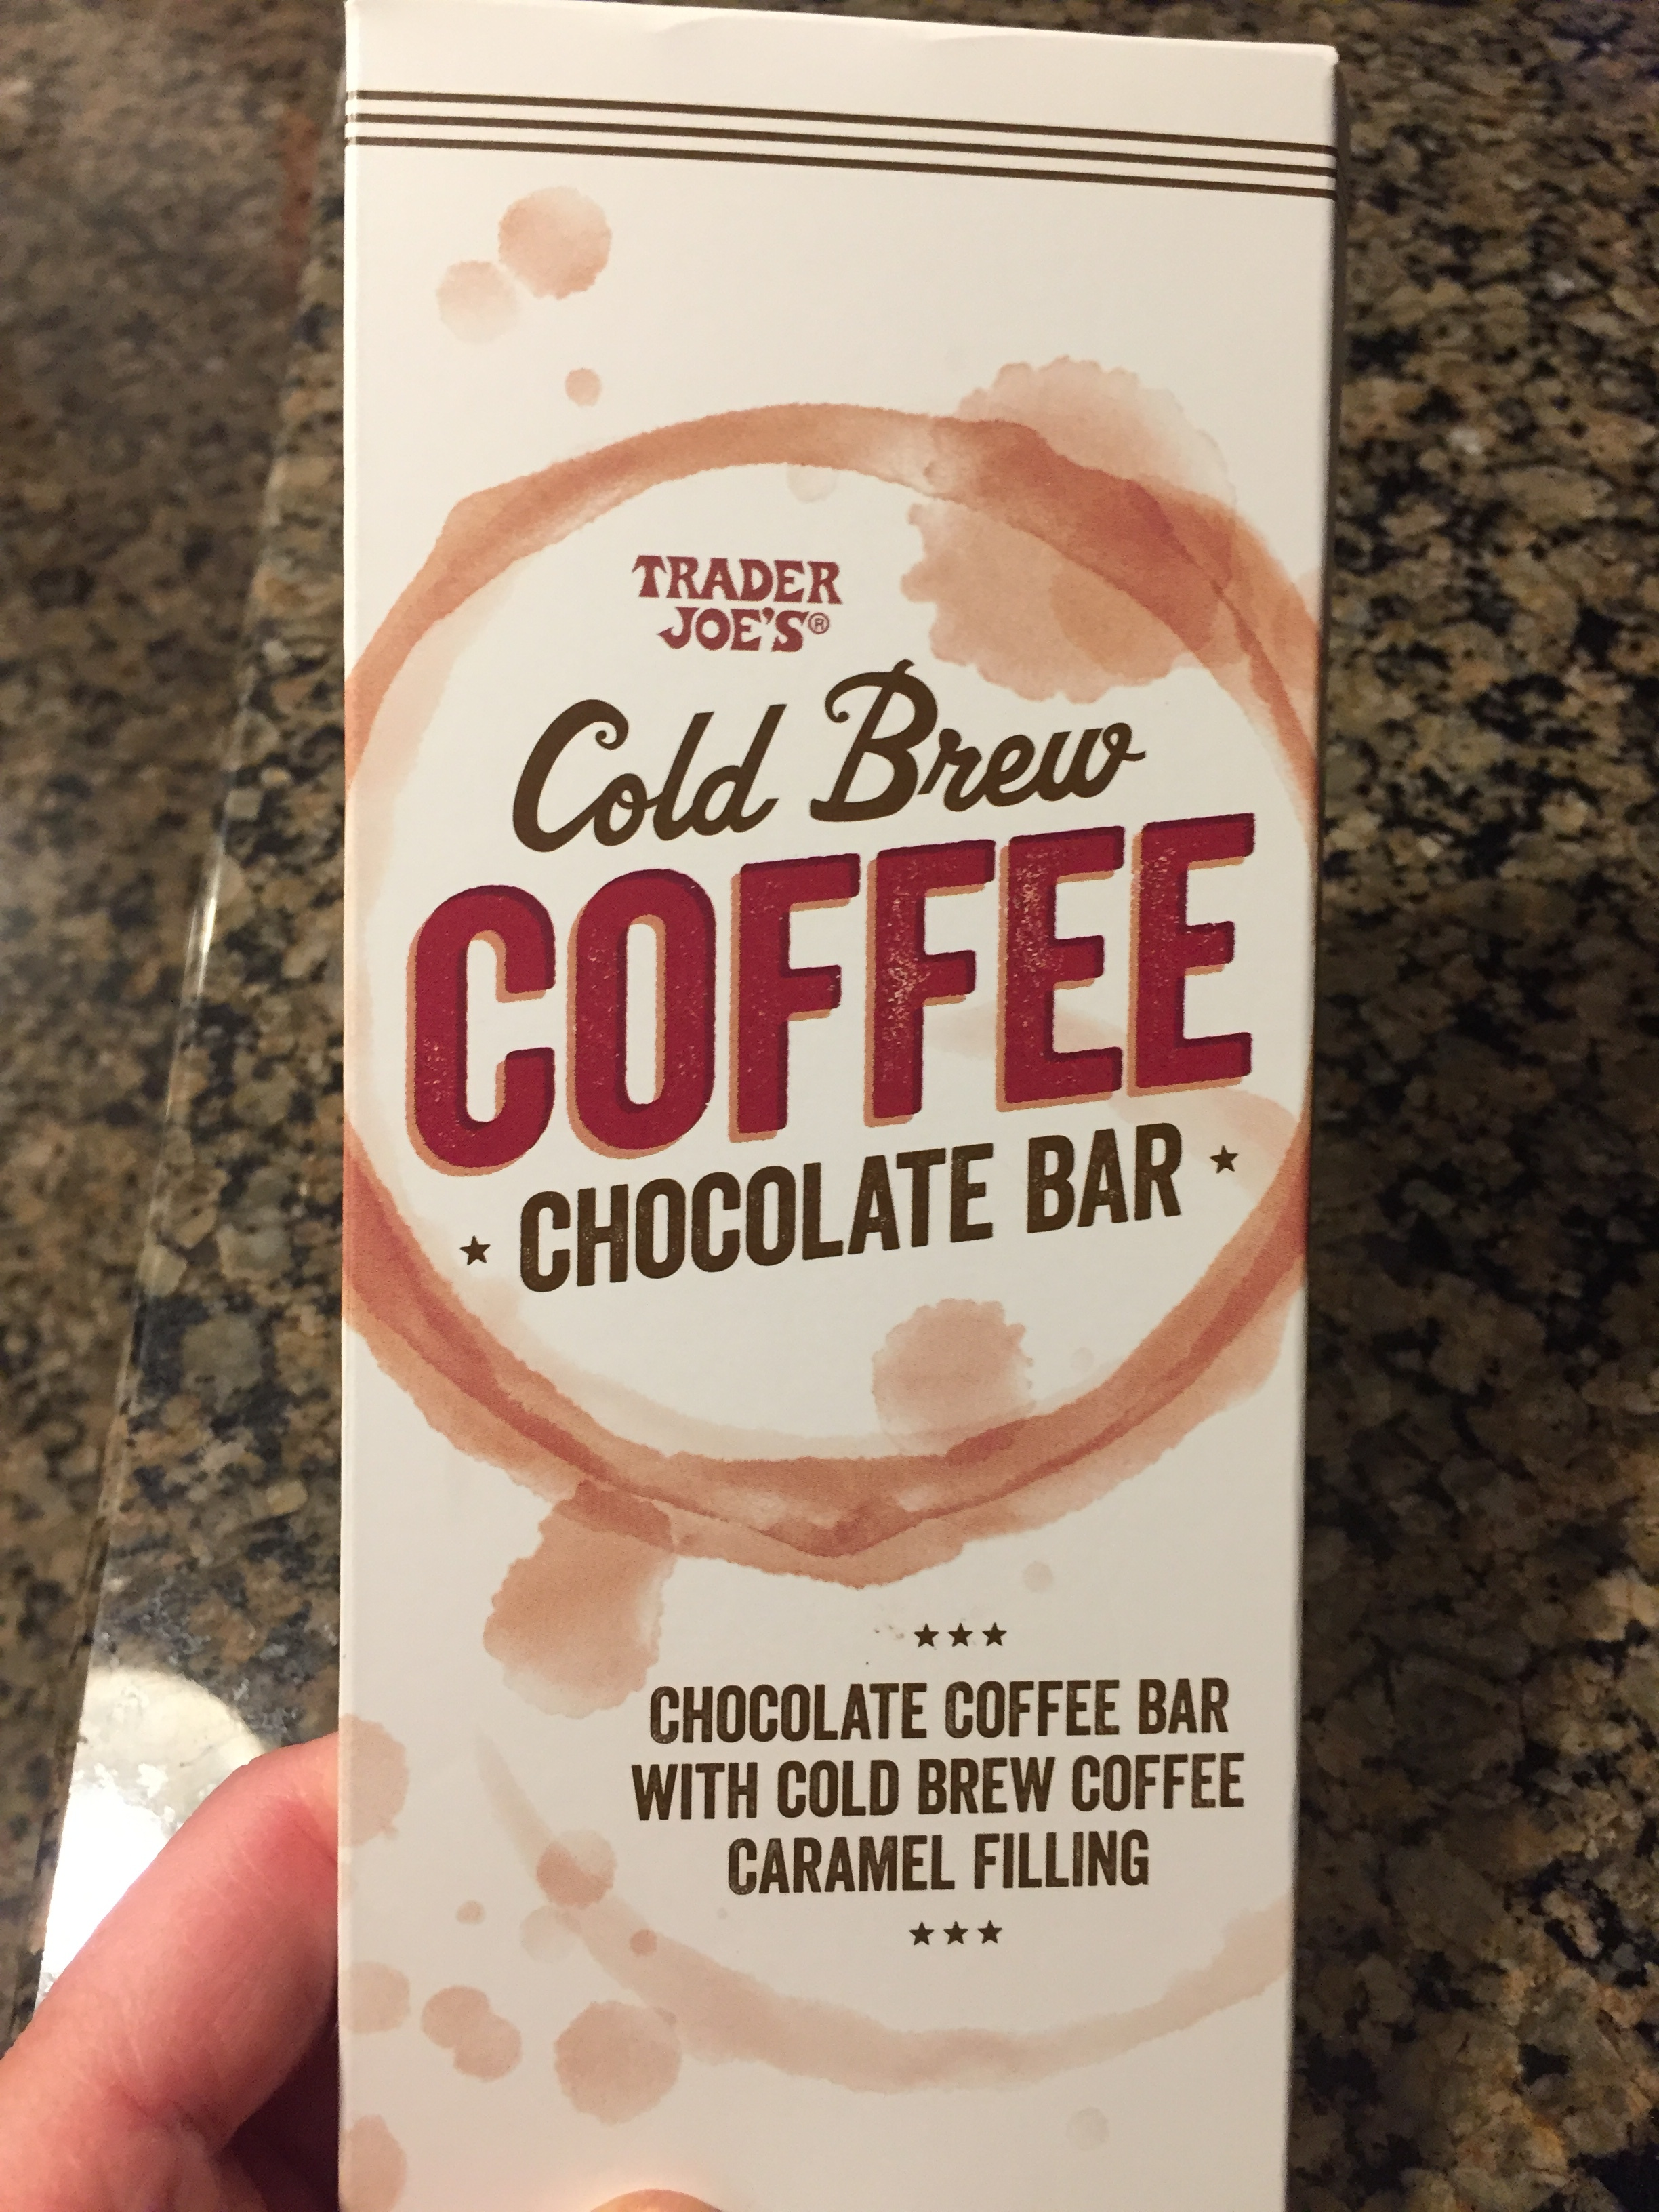 I have intense love for this chocolate bar. Dark chocolate filled with a cold-brew coffee caramel. You can eat a third of the bar for 150 calories! And it's a big bar. It's sooooo good. But it won't be good if you don't like dark chocolate or coffee (in which case we cannot be friends).